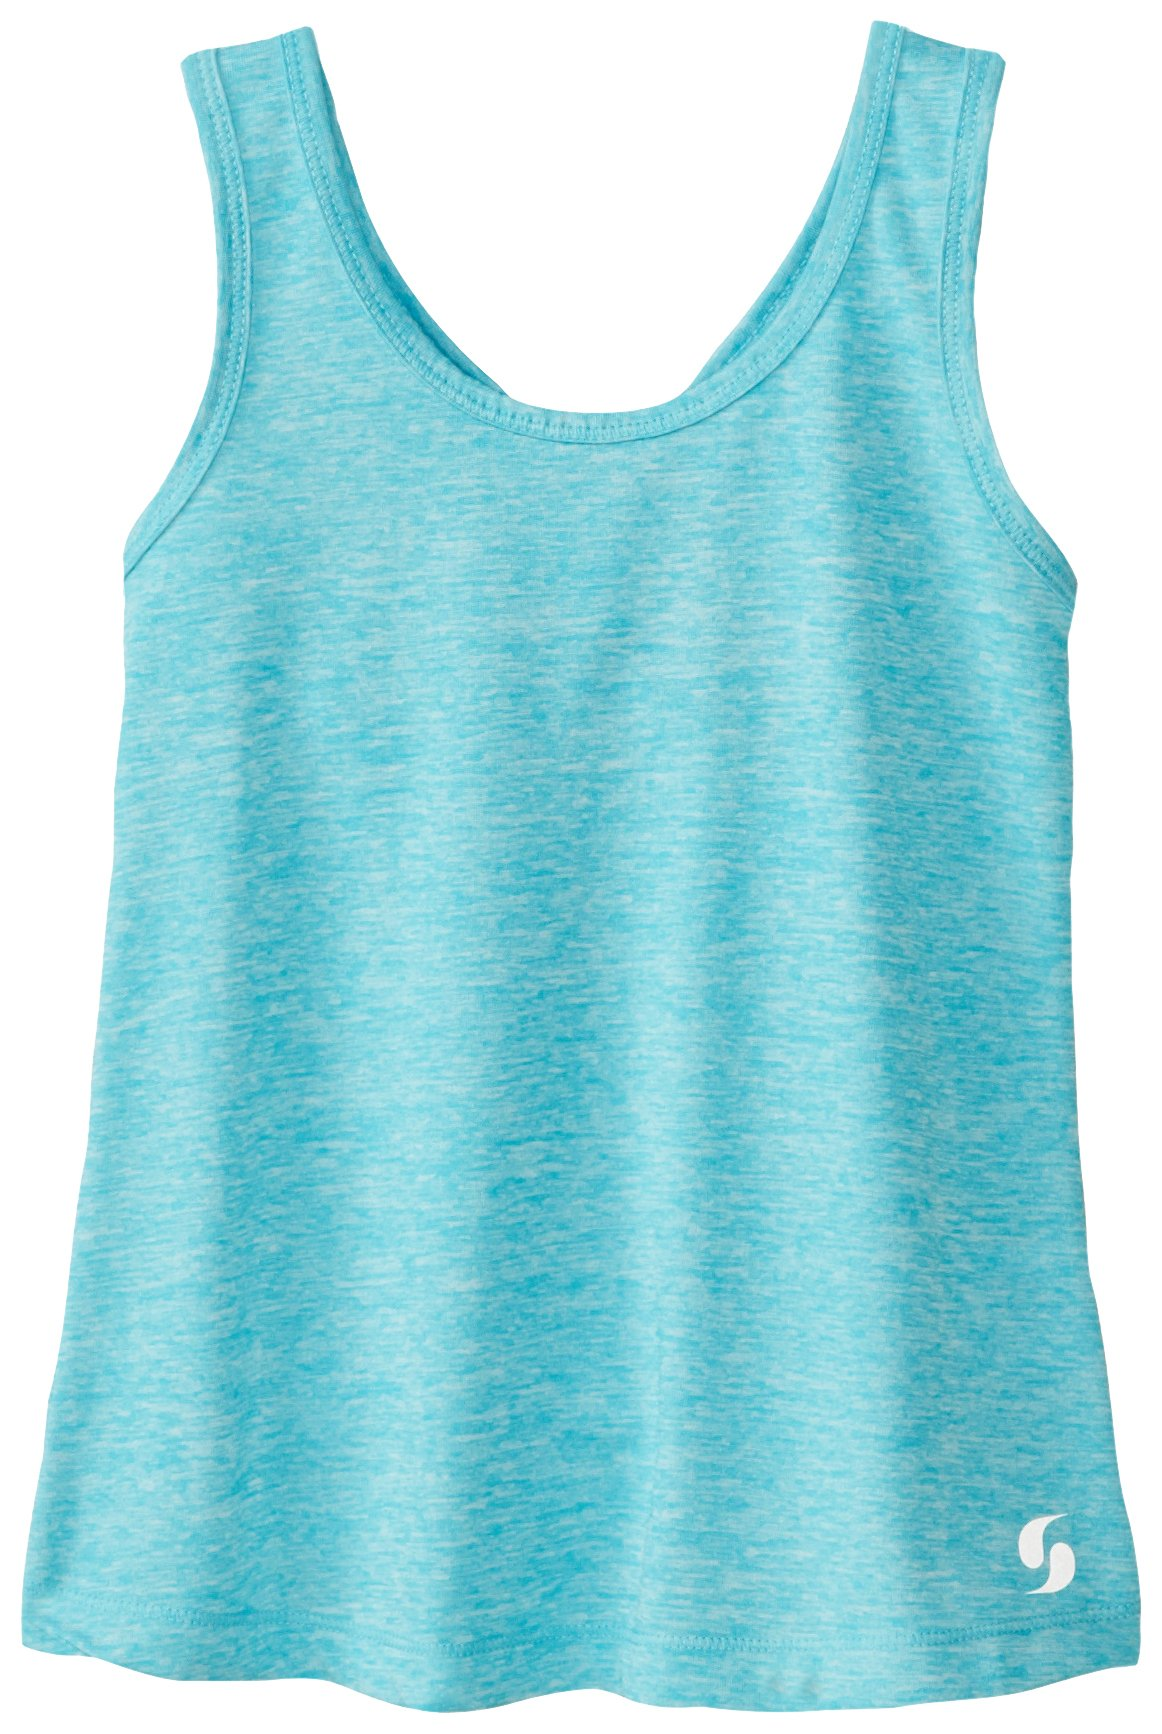 Soffe Big Girls' Knotted Racerback Tank, Scuba Blue, Medium by Soffe